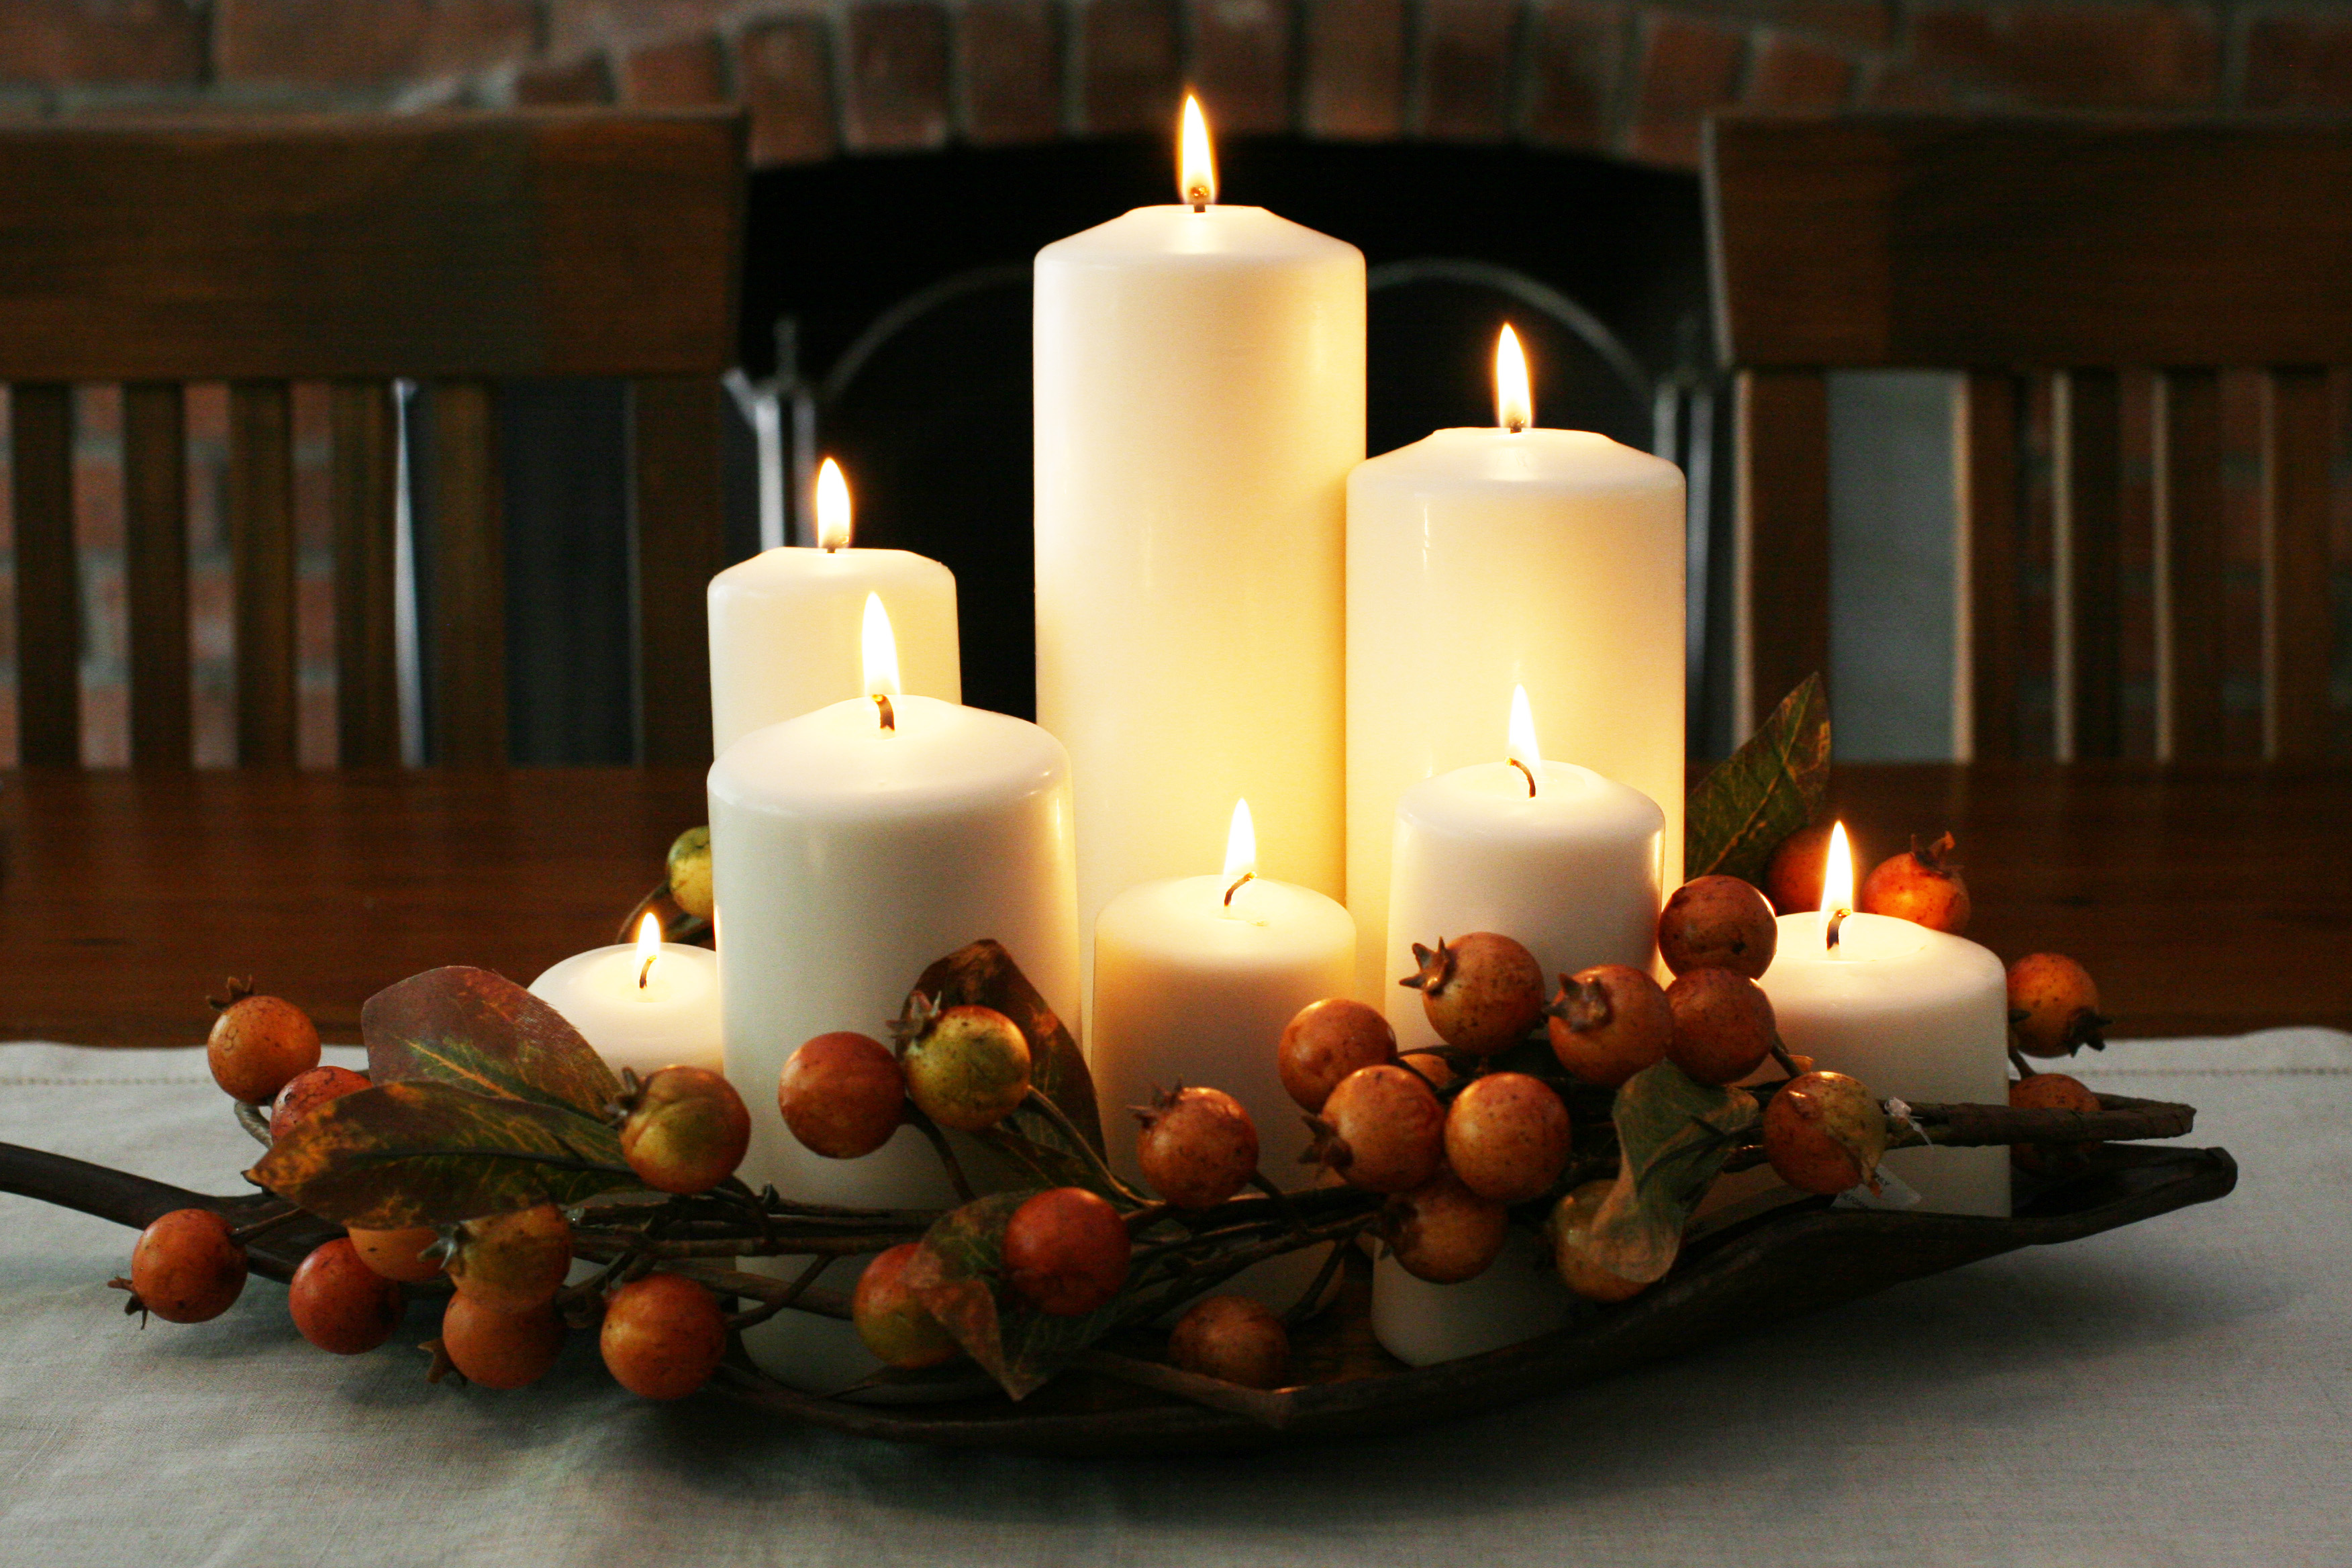 centerpiece-leaf tray-lit-1